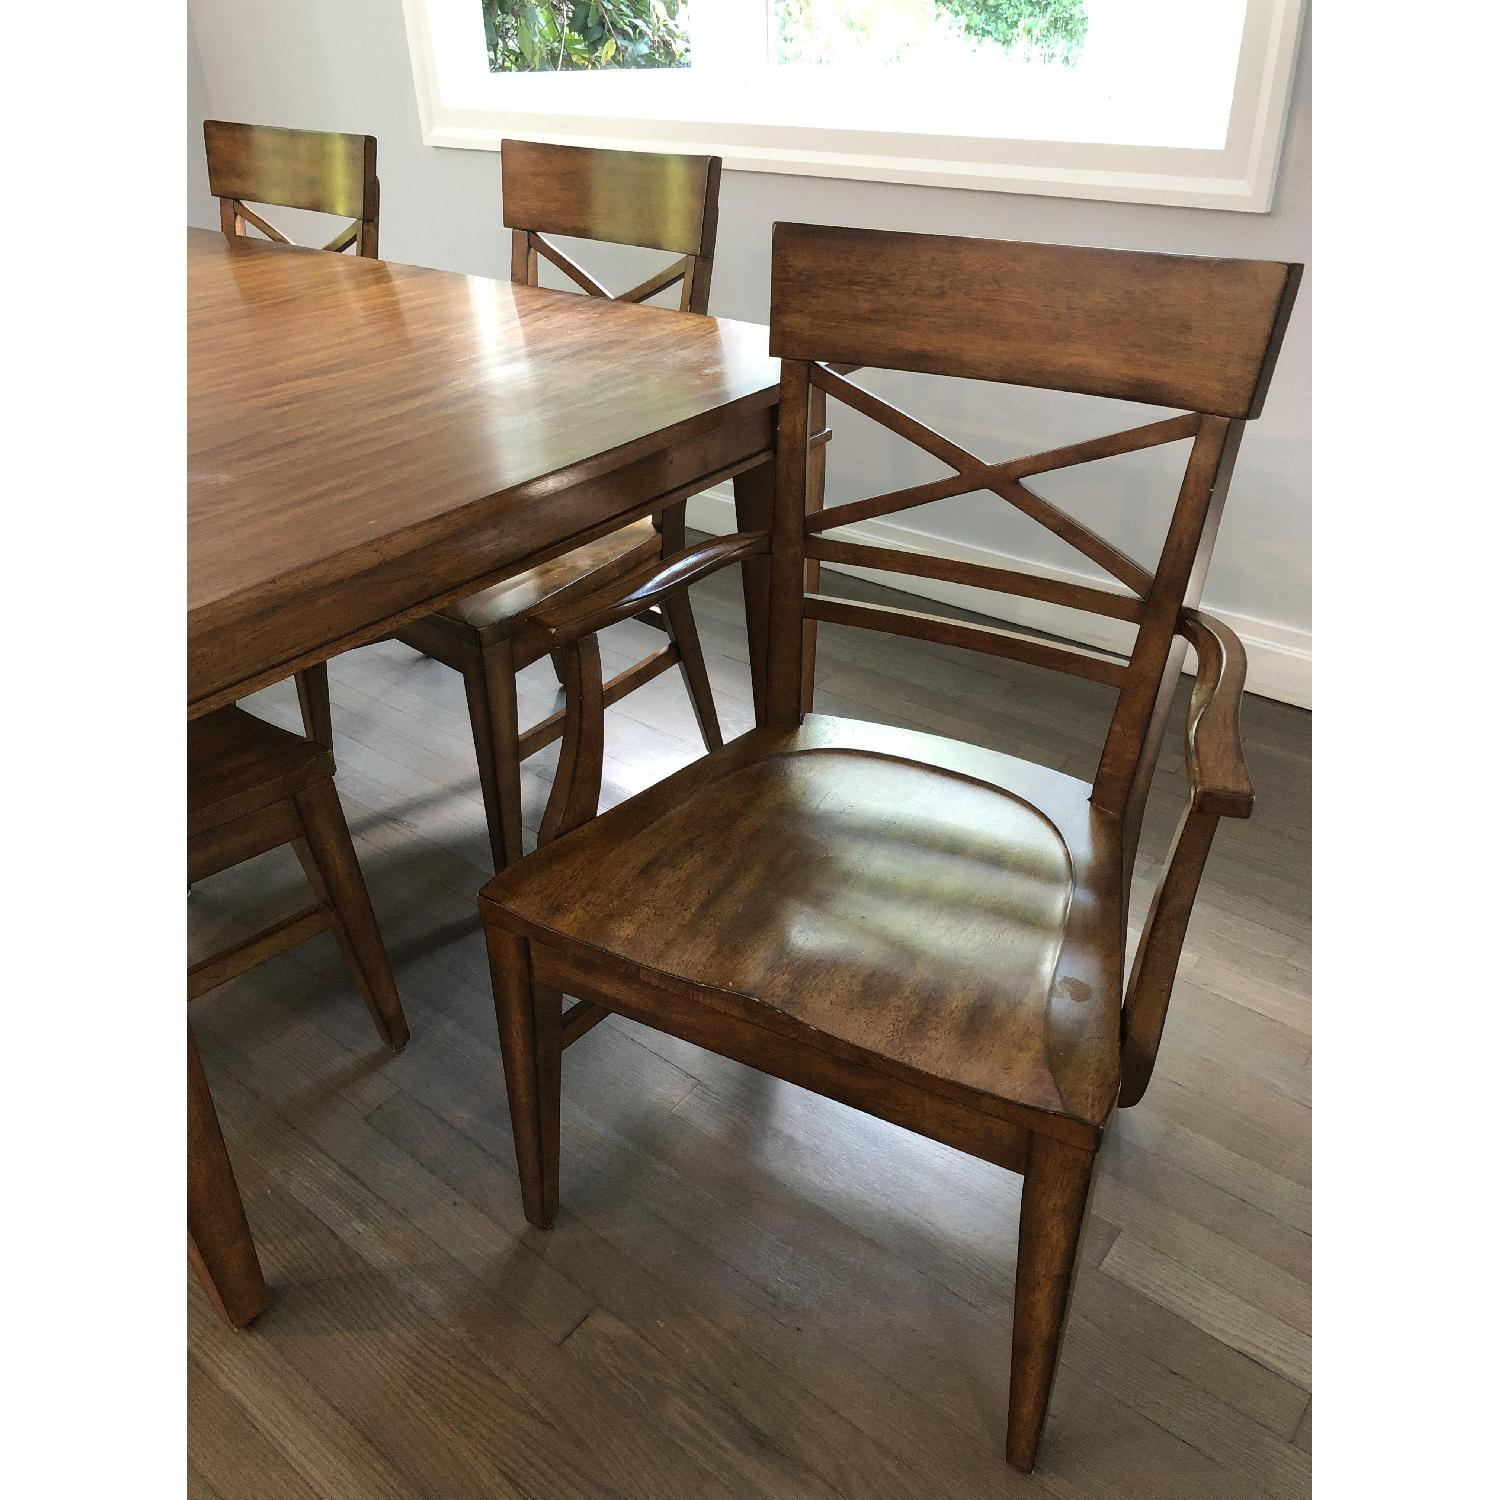 Ethan Allen Extension Dining Table w/ 6 Chairs - image-4